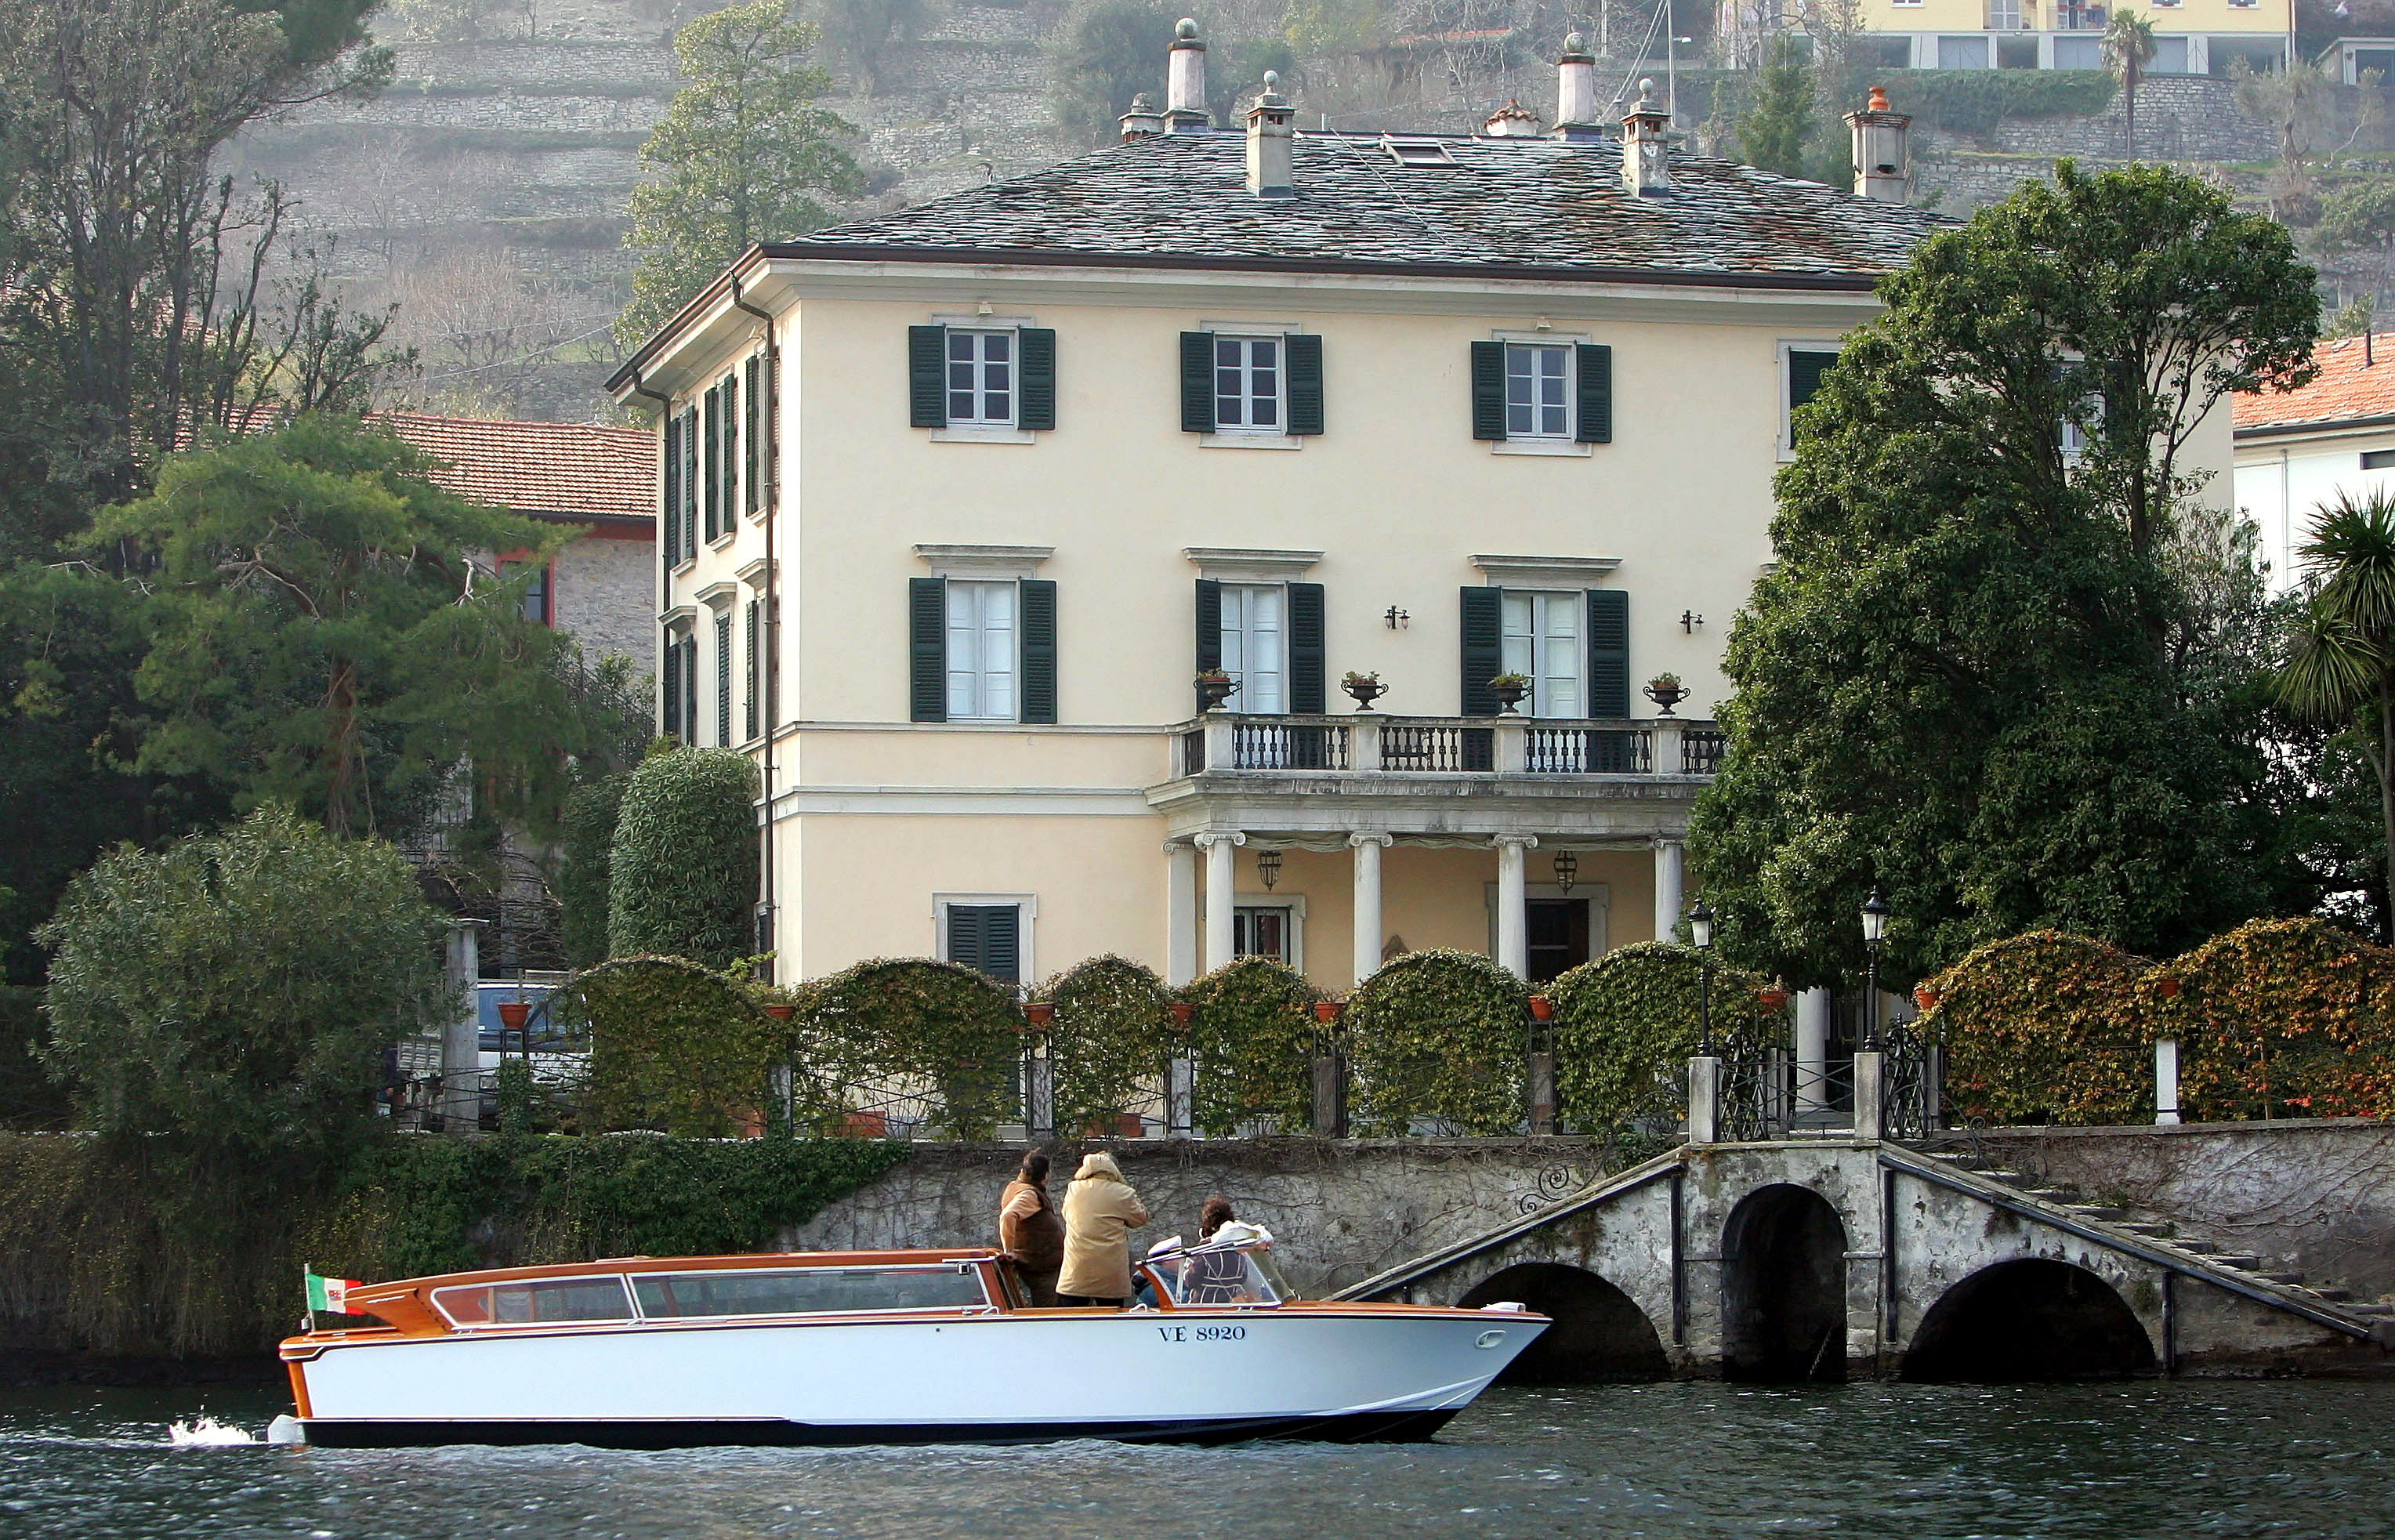 George clooney wedding location revealed actor to marry for Lake house in italian